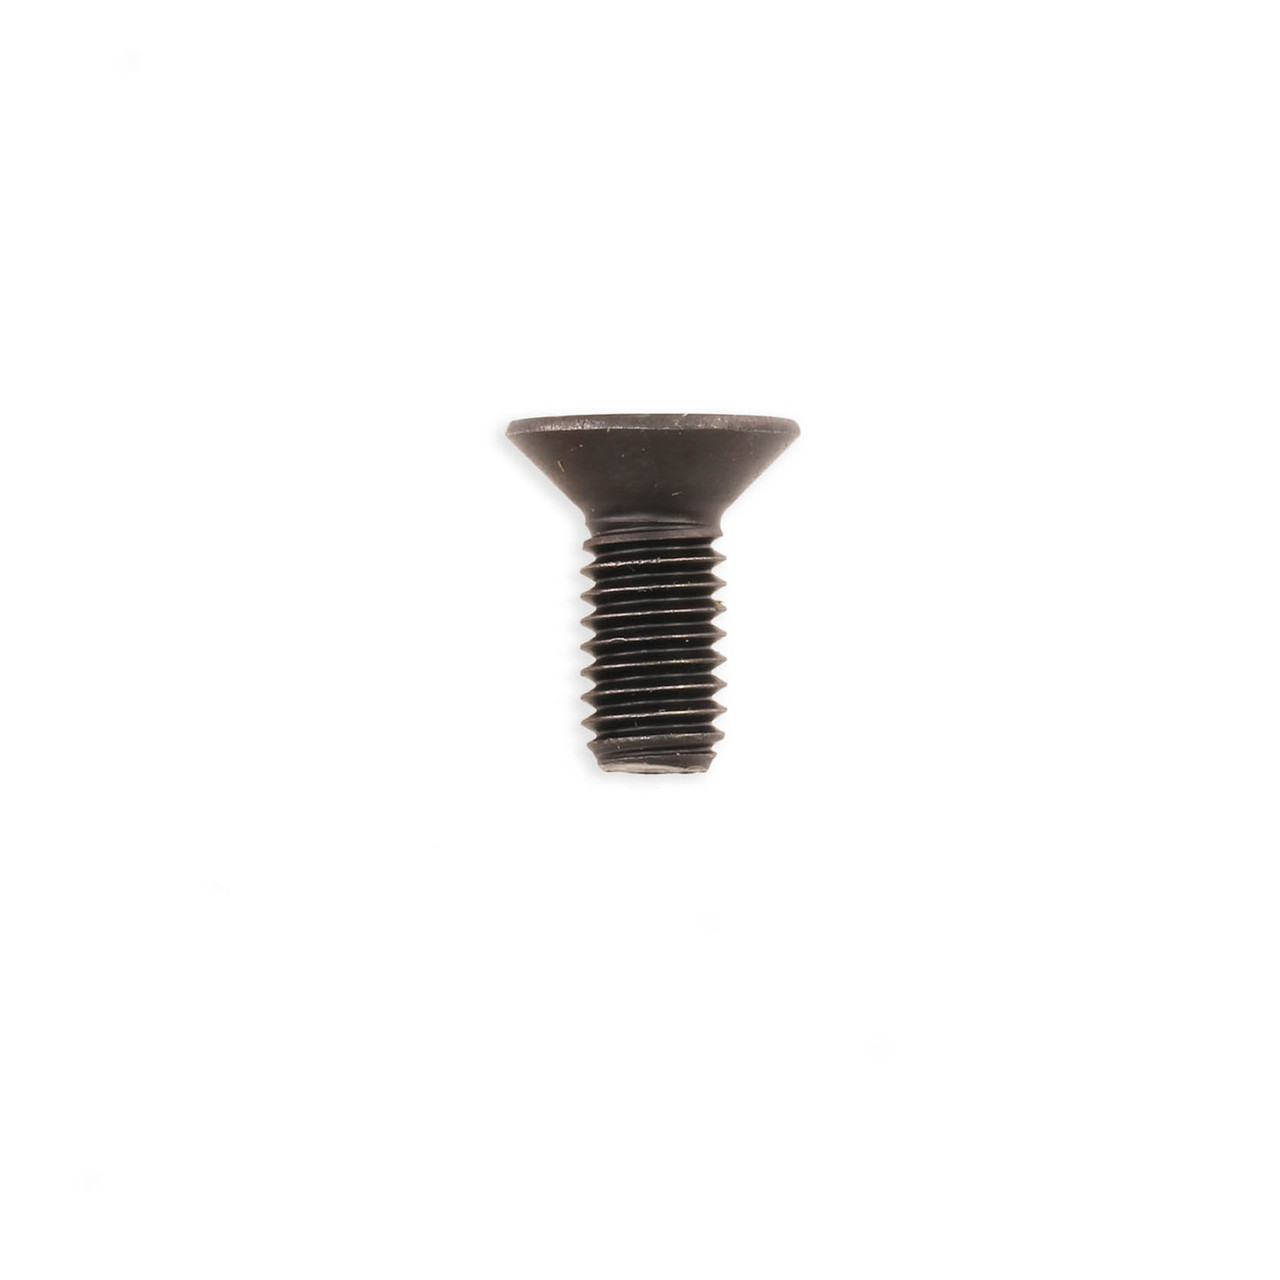 Hurricane Single Long Replacement Woodworm Screw for the HTC125 XL Extra Large Dovetail Jaws